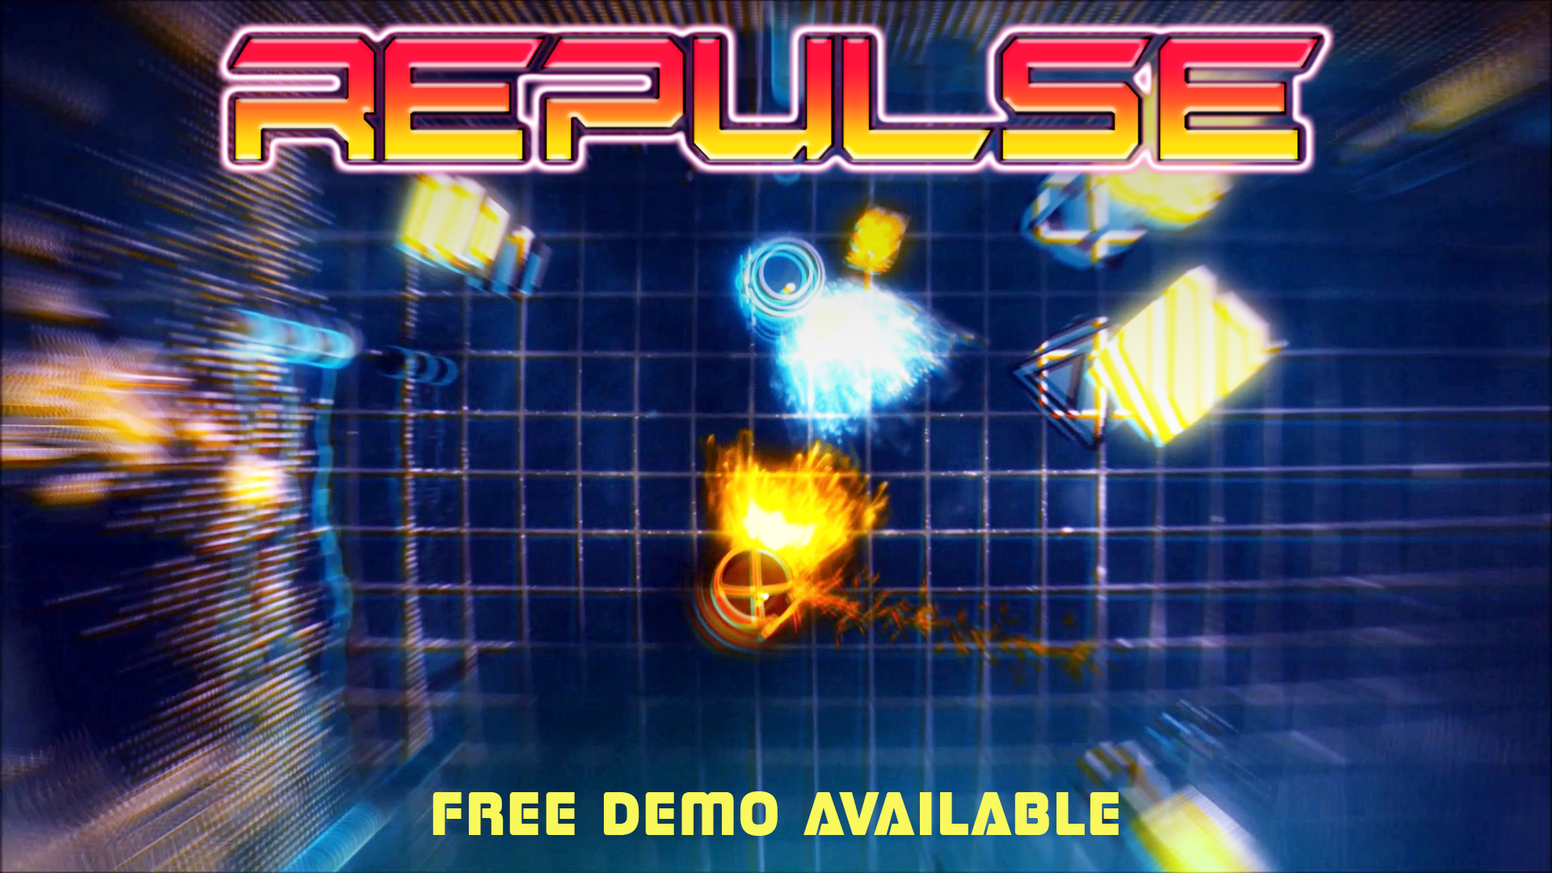 Challenge your friends in a rad physics-based, multiplayer game!